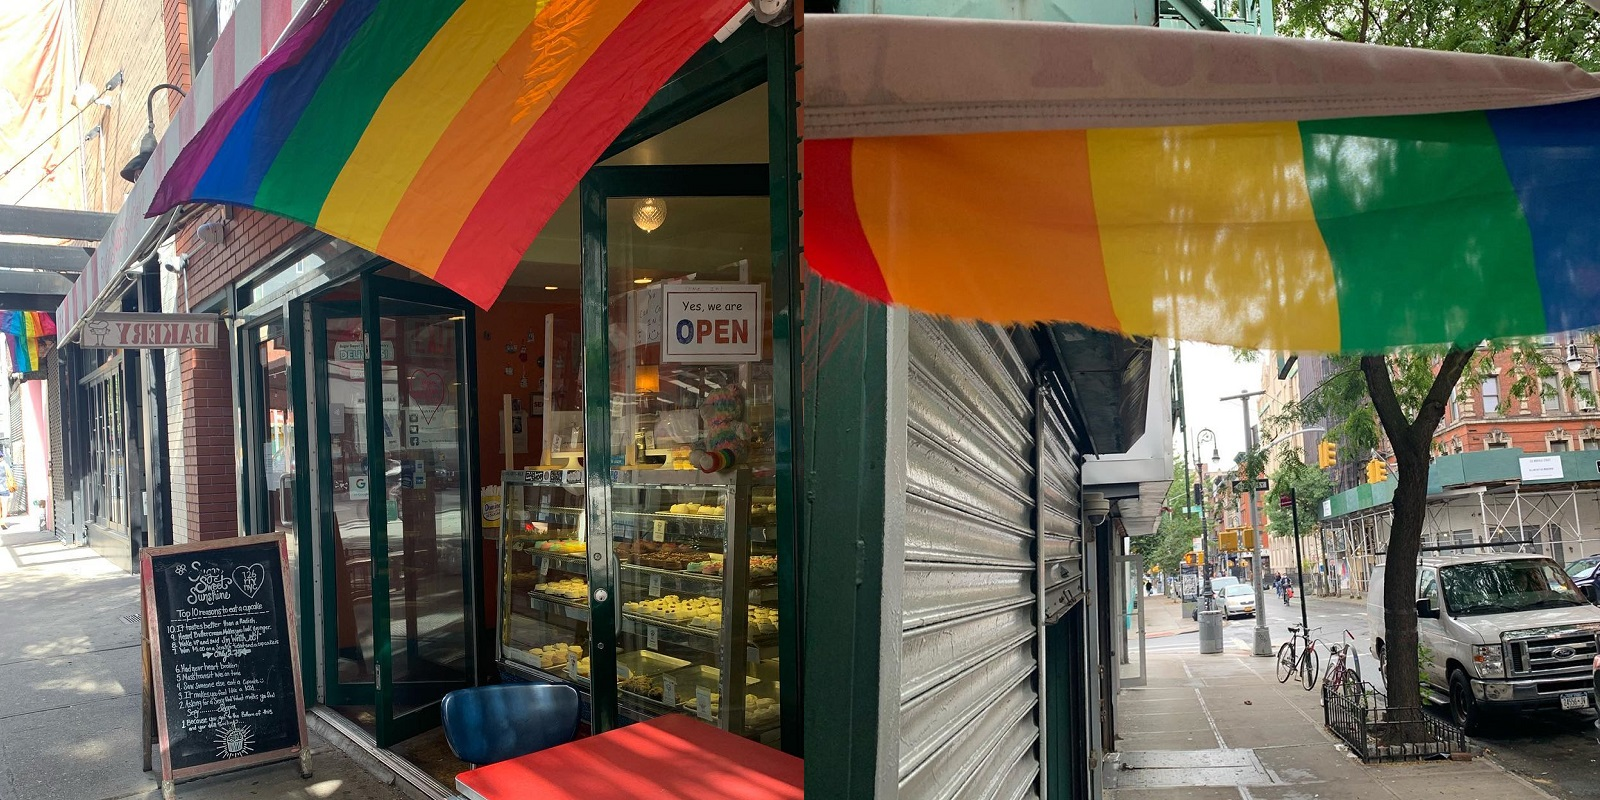 Vile thug mutilates LGBT-inclusive bakery's Pride flag with knife in 'disturbing' act of vandalism